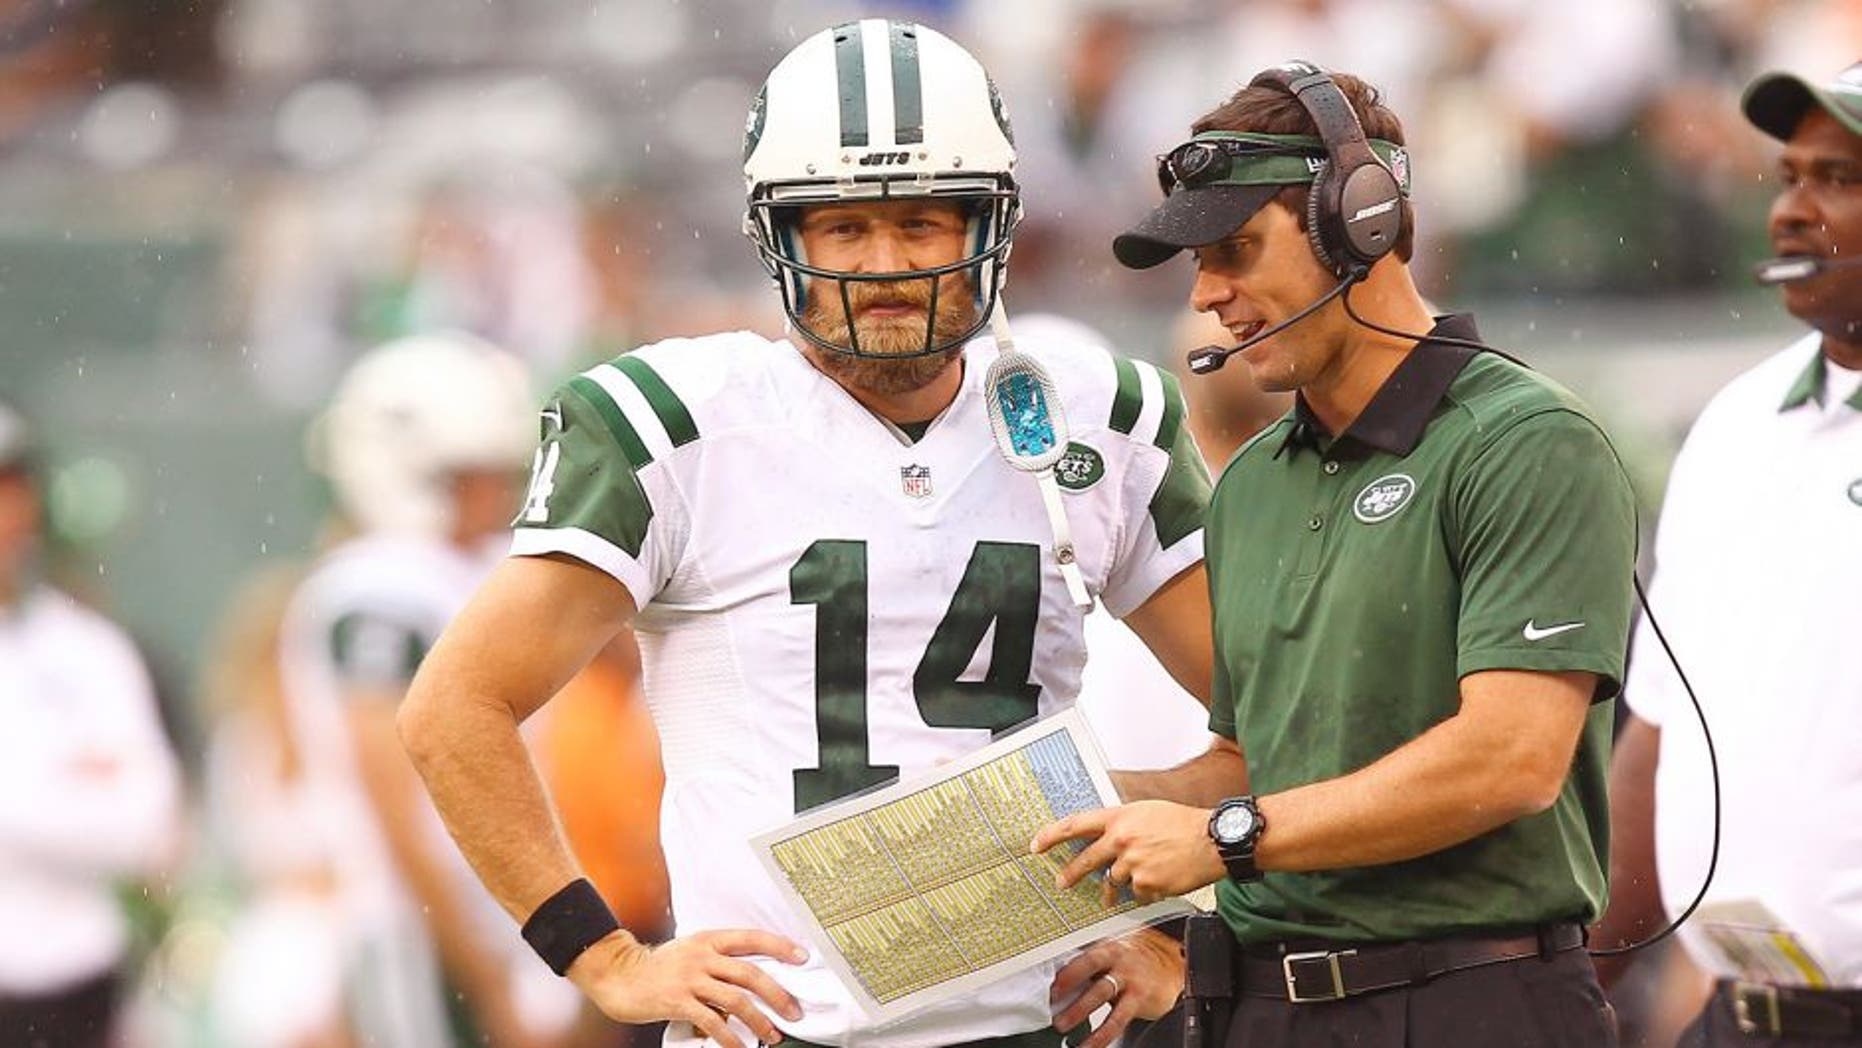 Sep 13, 2015; East Rutherford, NJ, USA; New York Jets quarterback Ryan Fitzpatrick (14) talks with a coach during the second half at MetLife Stadium. Mandatory Credit: Danny Wild-USA TODAY Sports